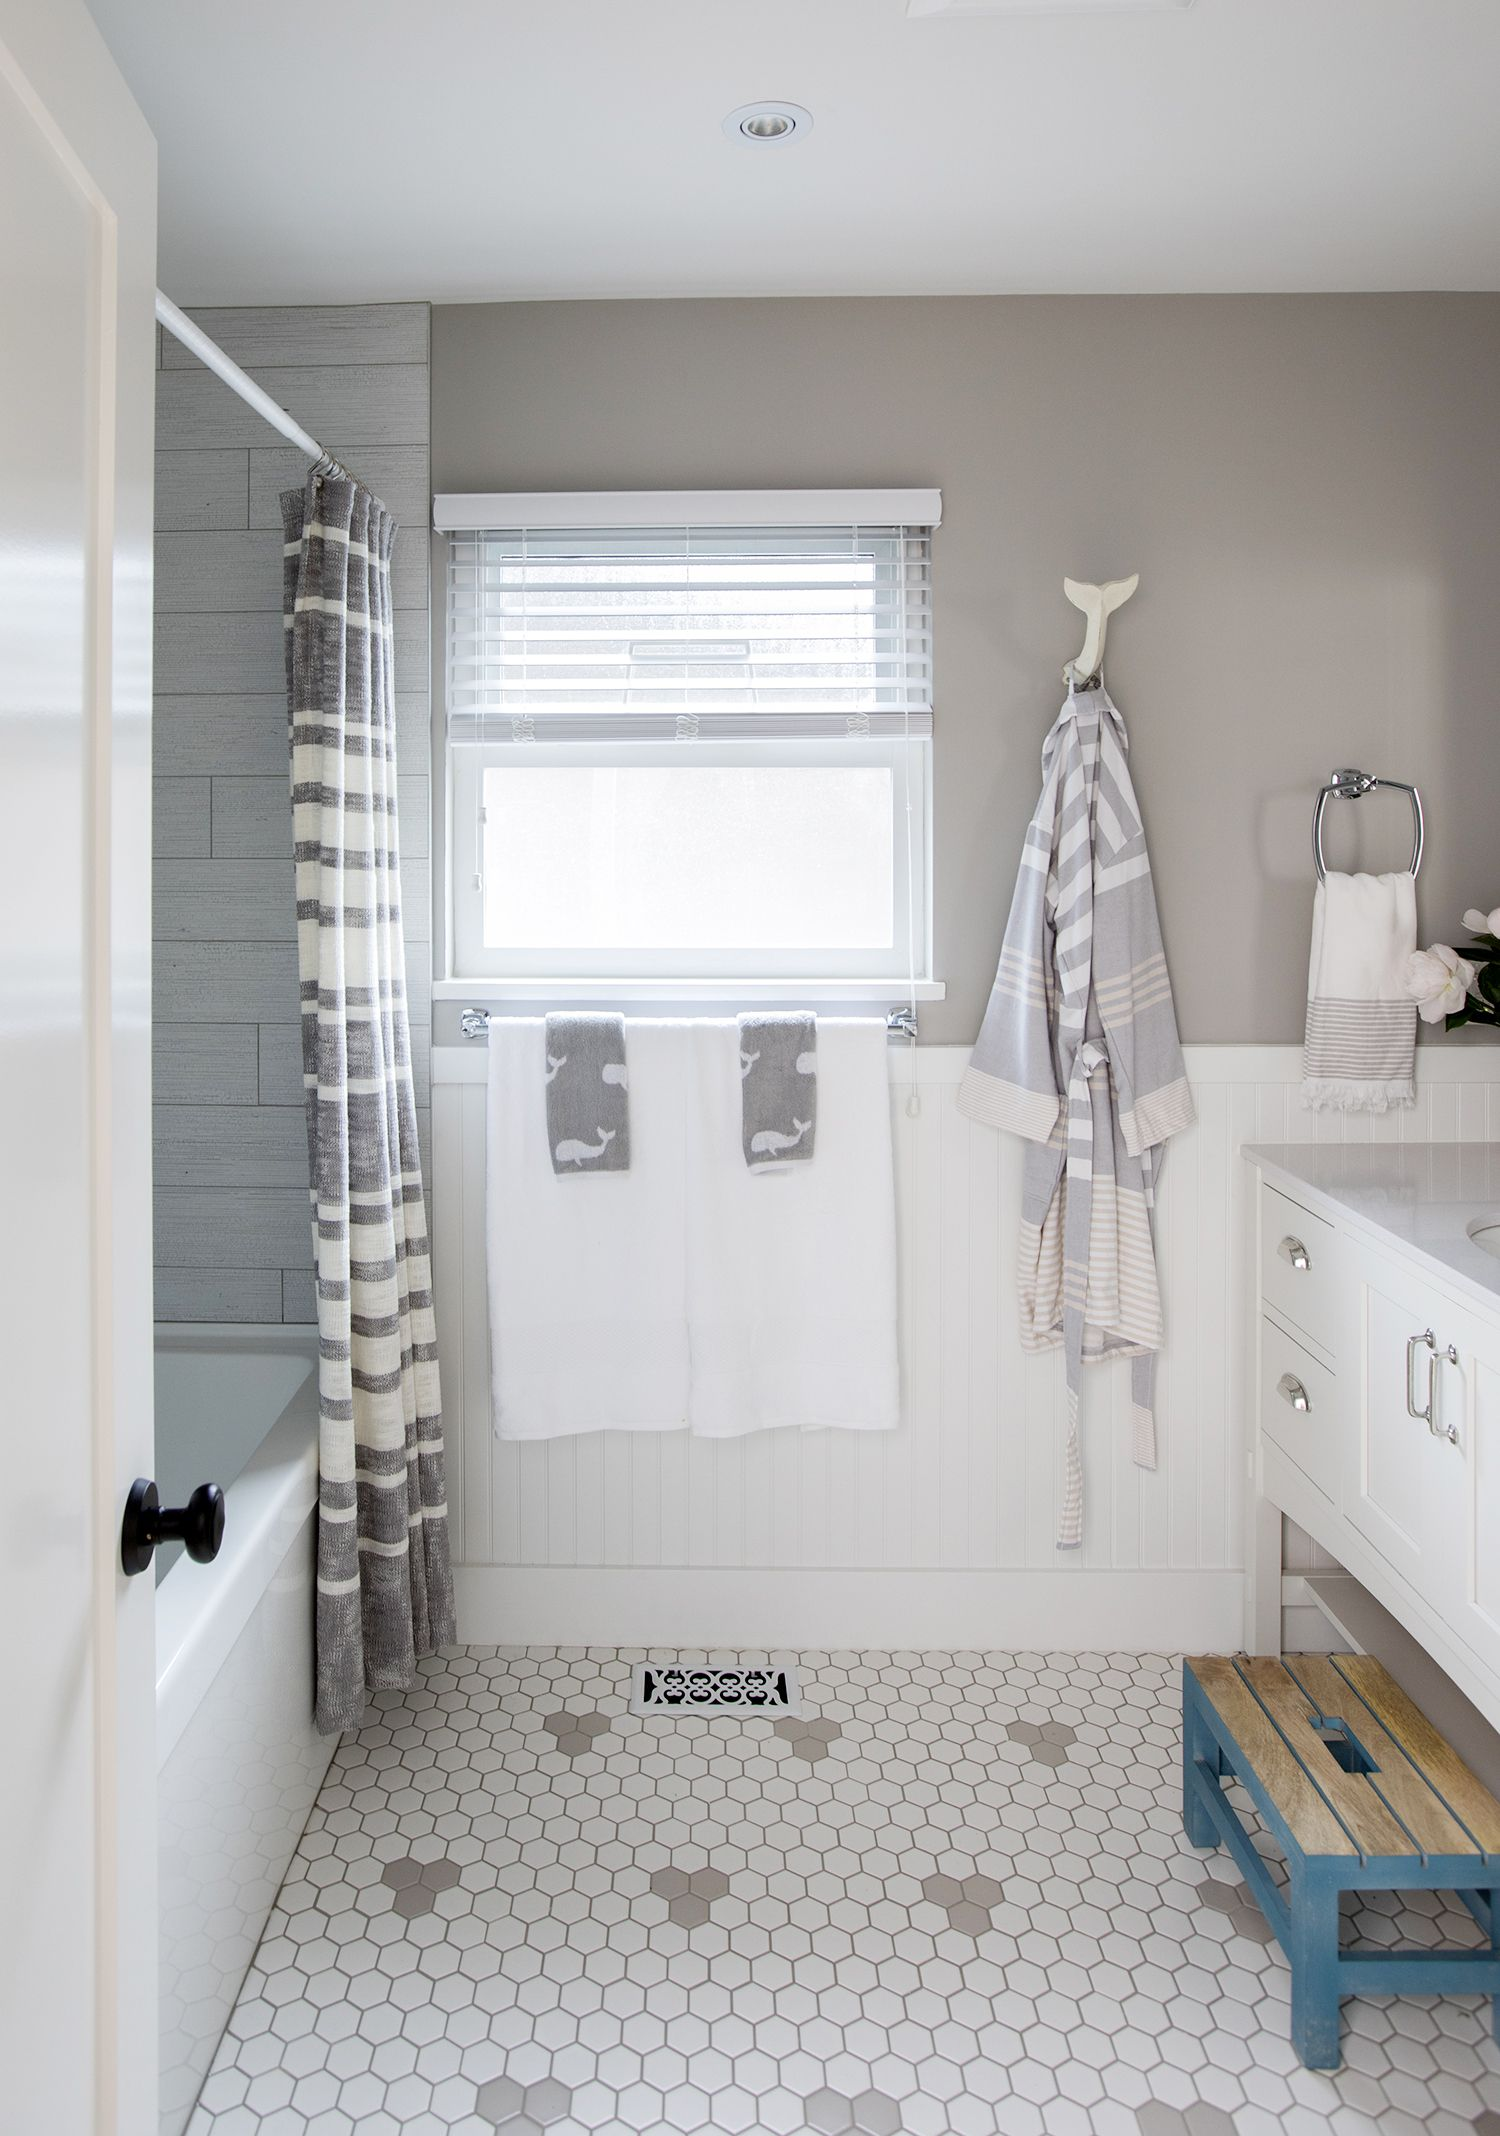 12 Kids\' Bathroom Design Ideas That Make a Big Splash | Pinterest ...